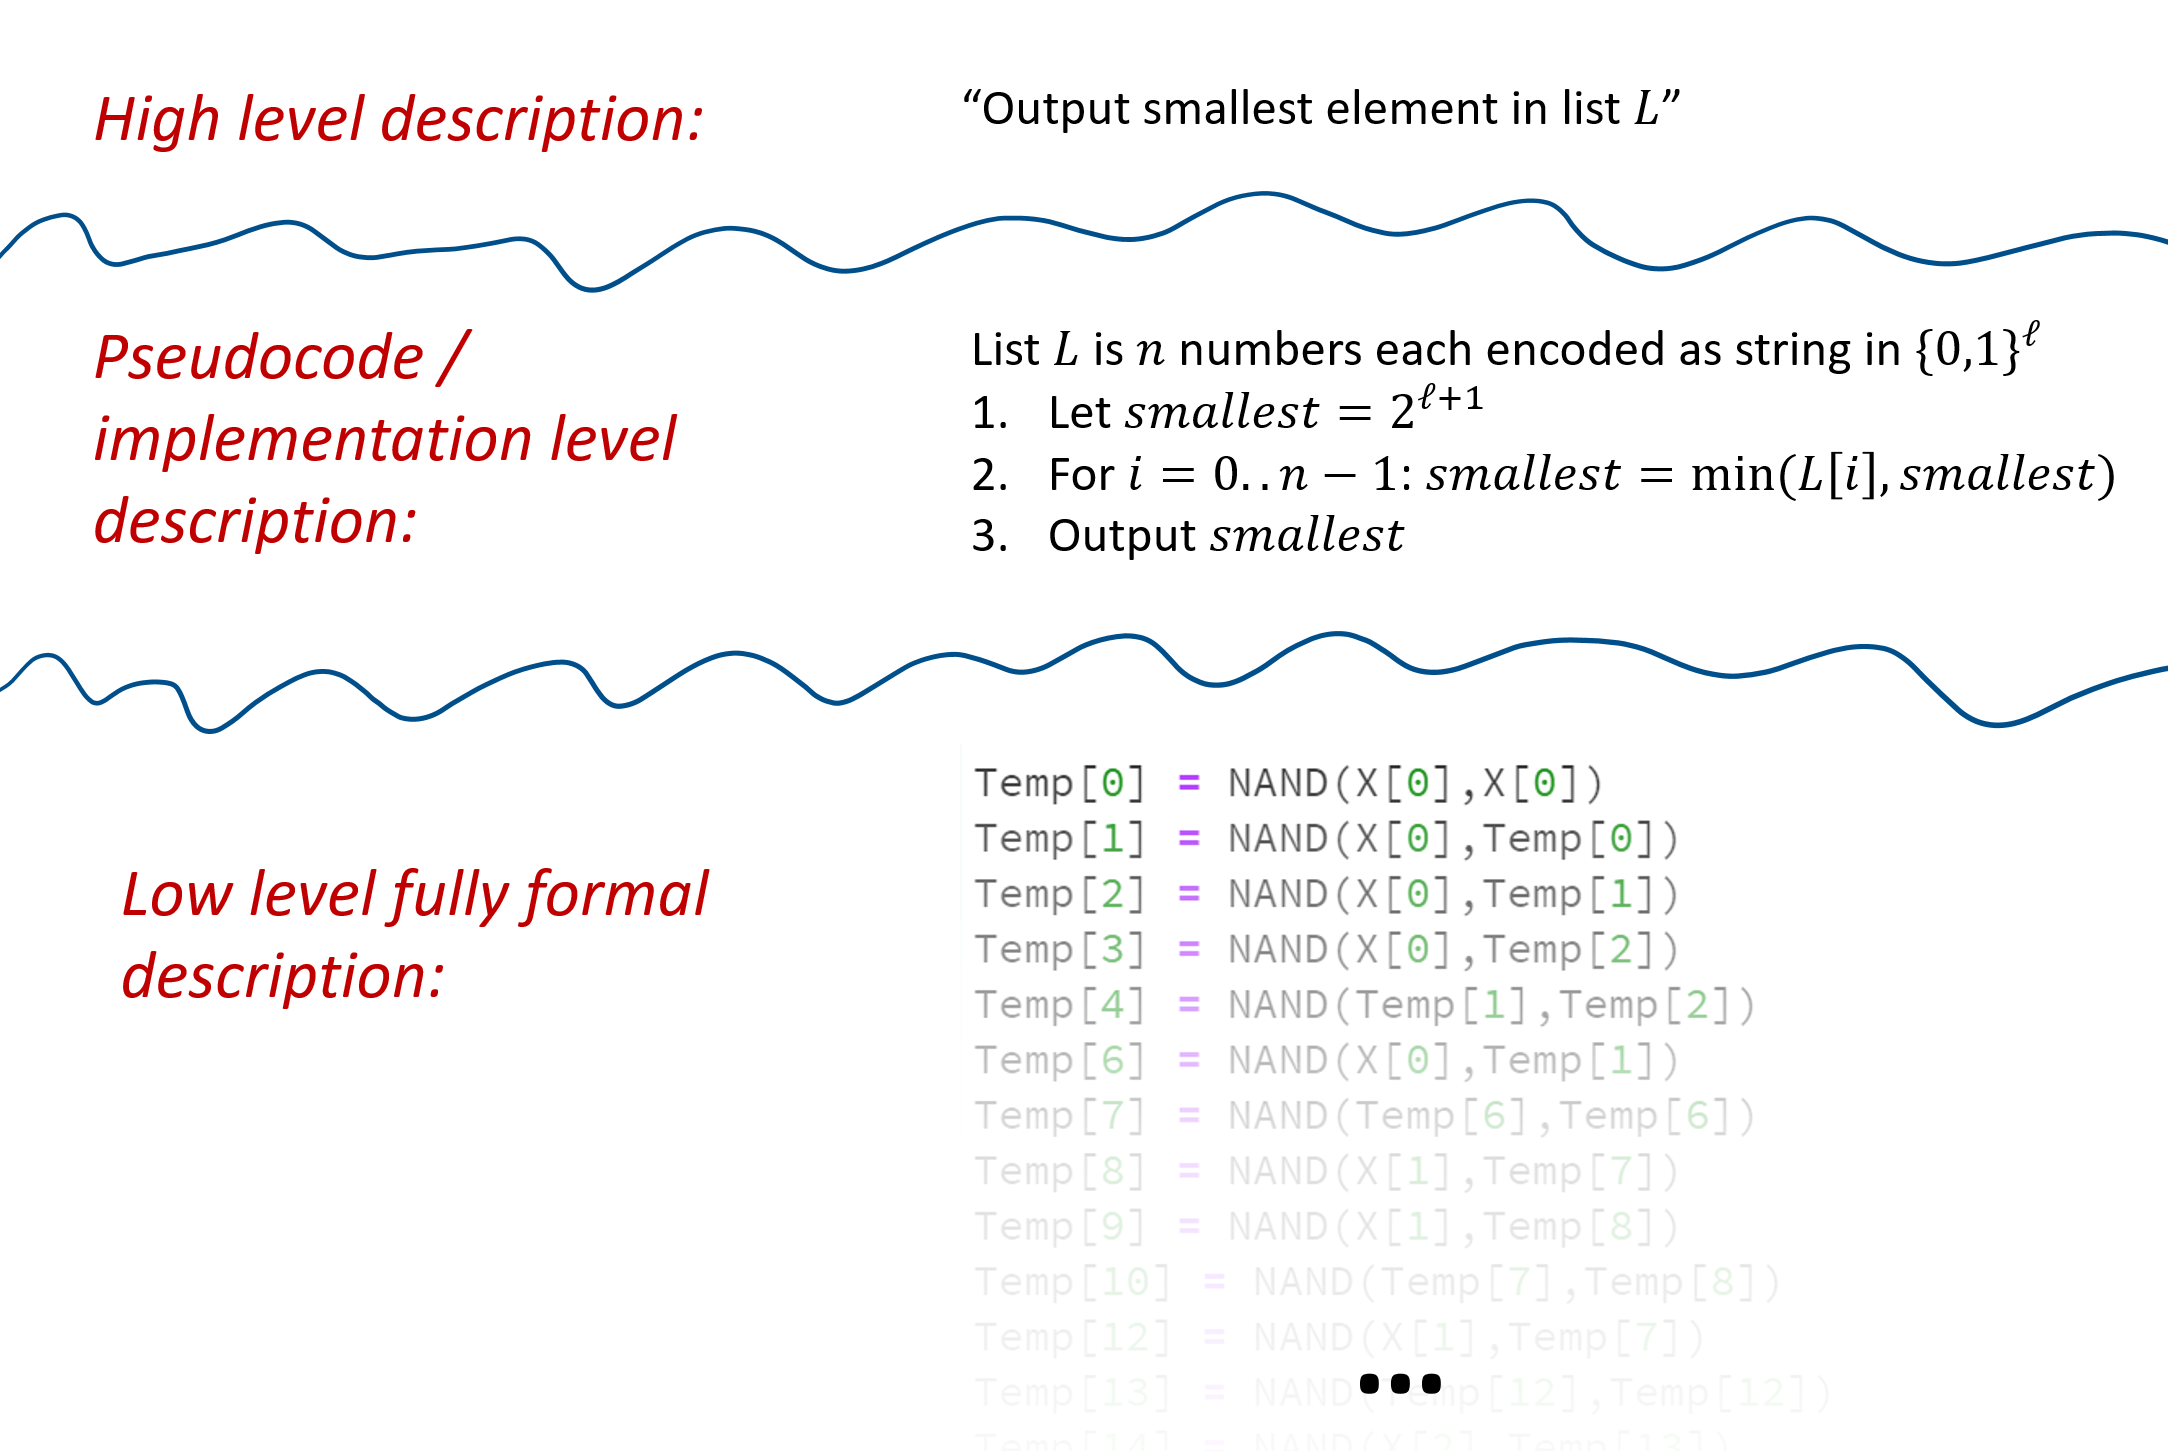 We can describe an algorithm at different levels of granularity/detail and precision. At the highest level we just write the idea in words, omitting all details on representation and implementation. In the intermediate level (also known as implementation or pseudocode) we give enough details of the implementation that would allow someone to derive it, though we still fall short of providing the full code. The lowest level is where the actual code or mathematical description is fully spelled out. These different levels of detail all have their uses, and moving between them is one of the most important skills for a computer scientist.